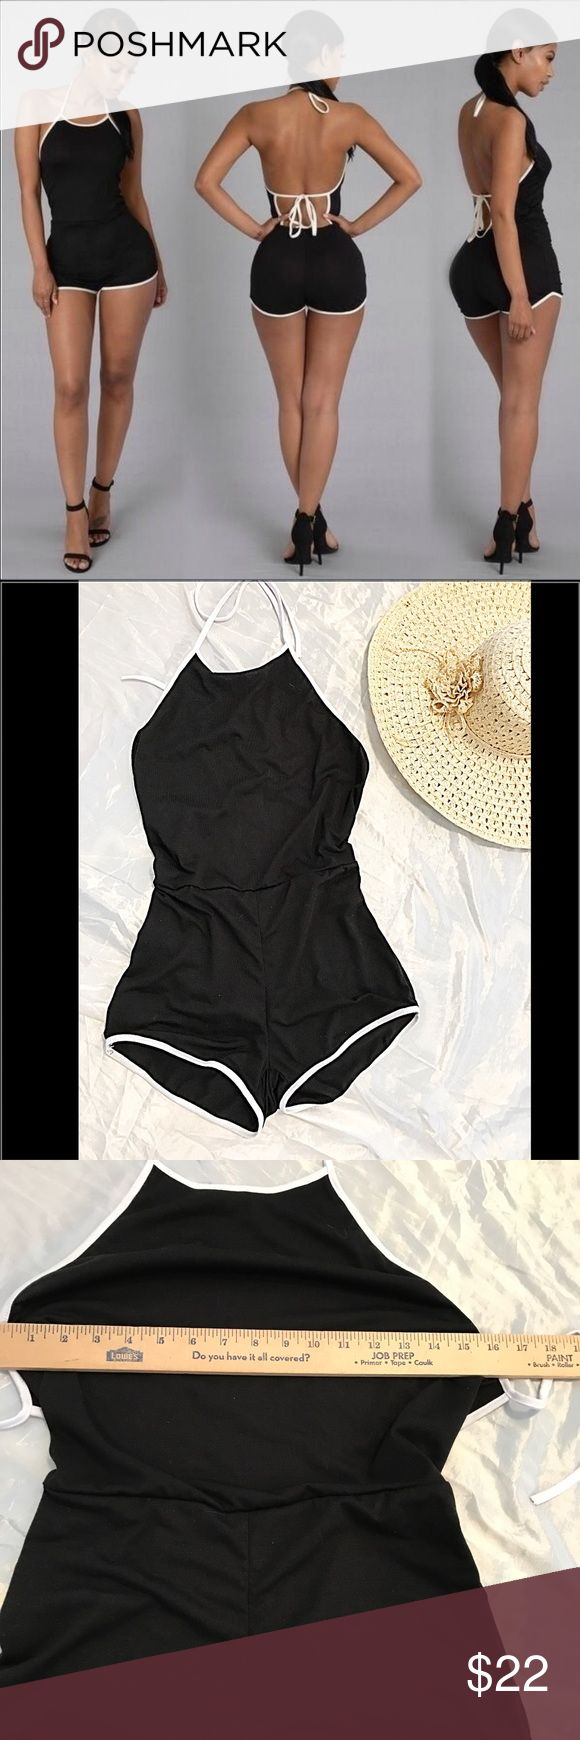 Black Summer Romper Jumpsuit Jumper Shorts Black summer jumper romper shorts. Lightweight and open back. One size fits most please check measurement pictures. Easily fits small and medium. New in package. Pants Jumpsuits & Rompers